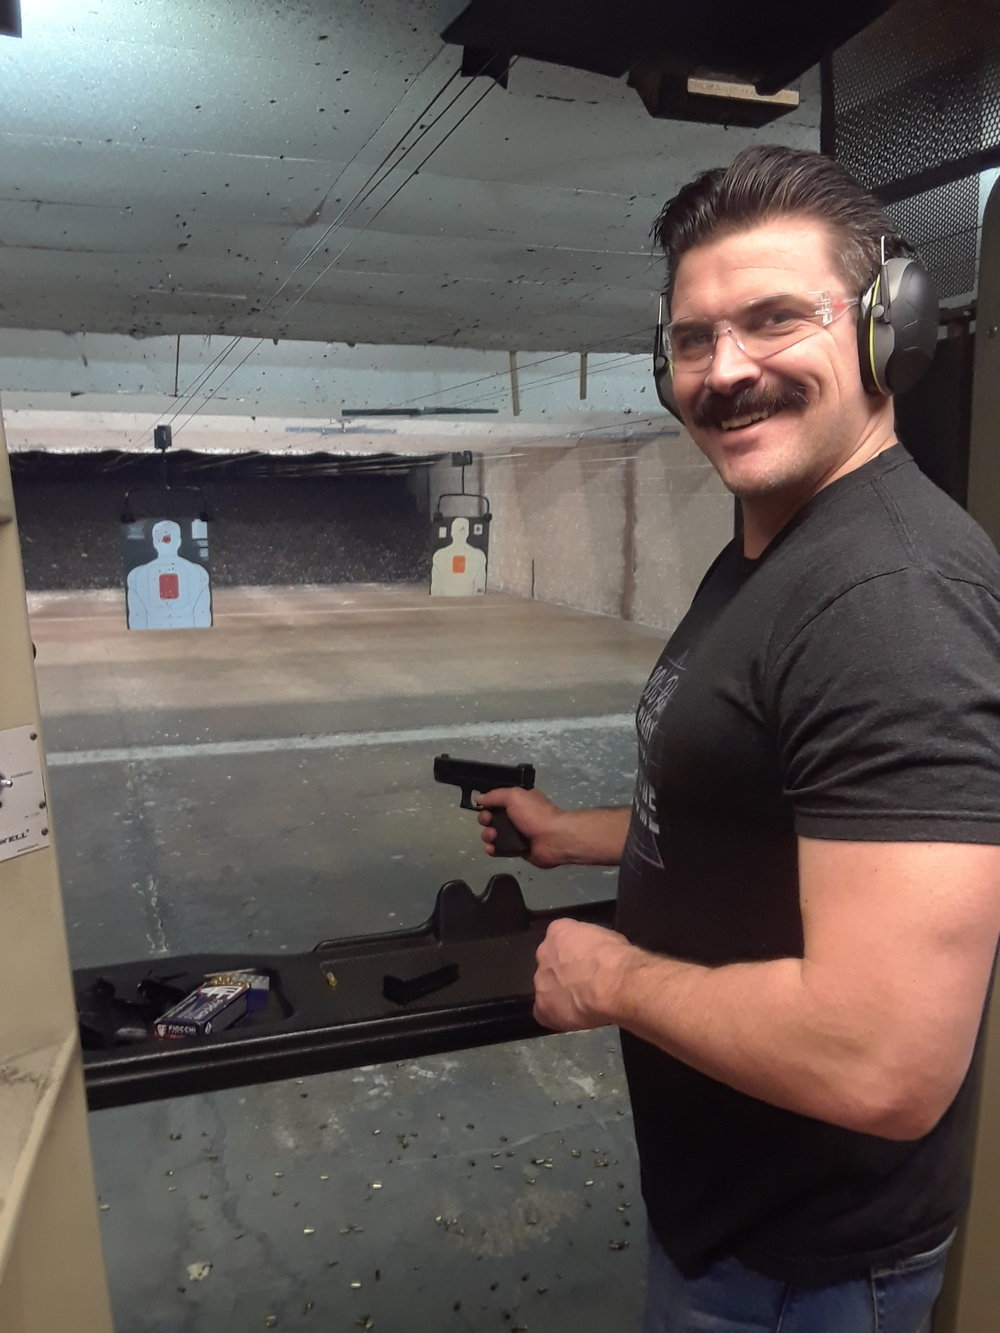 """Tyler Allen - Tyler is a Naval Special Warfare Combat Crewman veteran who served overseas in Iraq, Colombia, and many other countries. He is currently a deputy for the LA County Sheriff's Department and also an NRA certified instructor in handgun. If there is one skill Tyler will have you remember after your class and well beyond is to """"KEEP YOUR FINGER OFF THE TRIGGER"""" until ready to shoot. Tyler brings not only his firearms expertise to the range, but also his calm, composed demeanor which allows new shooters to feel relaxed and confident."""